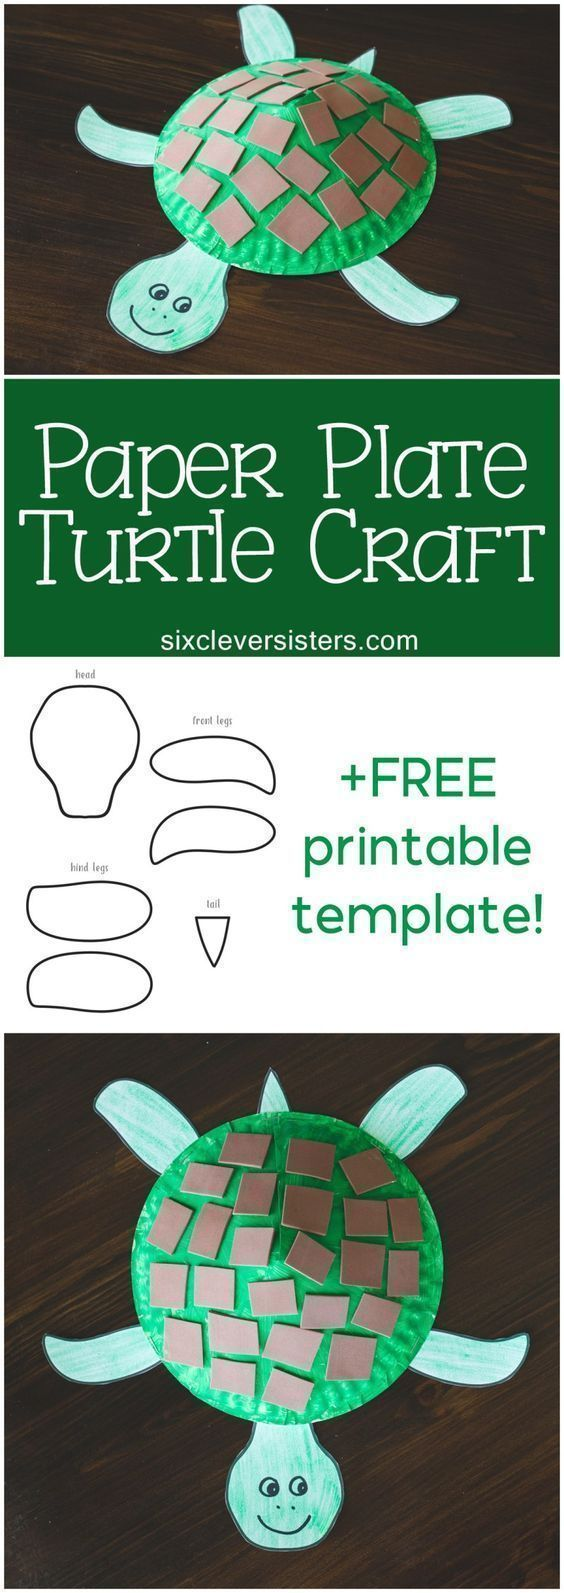 Paper Plate Turtle Craft for Kids (+ Free Printable Template!)